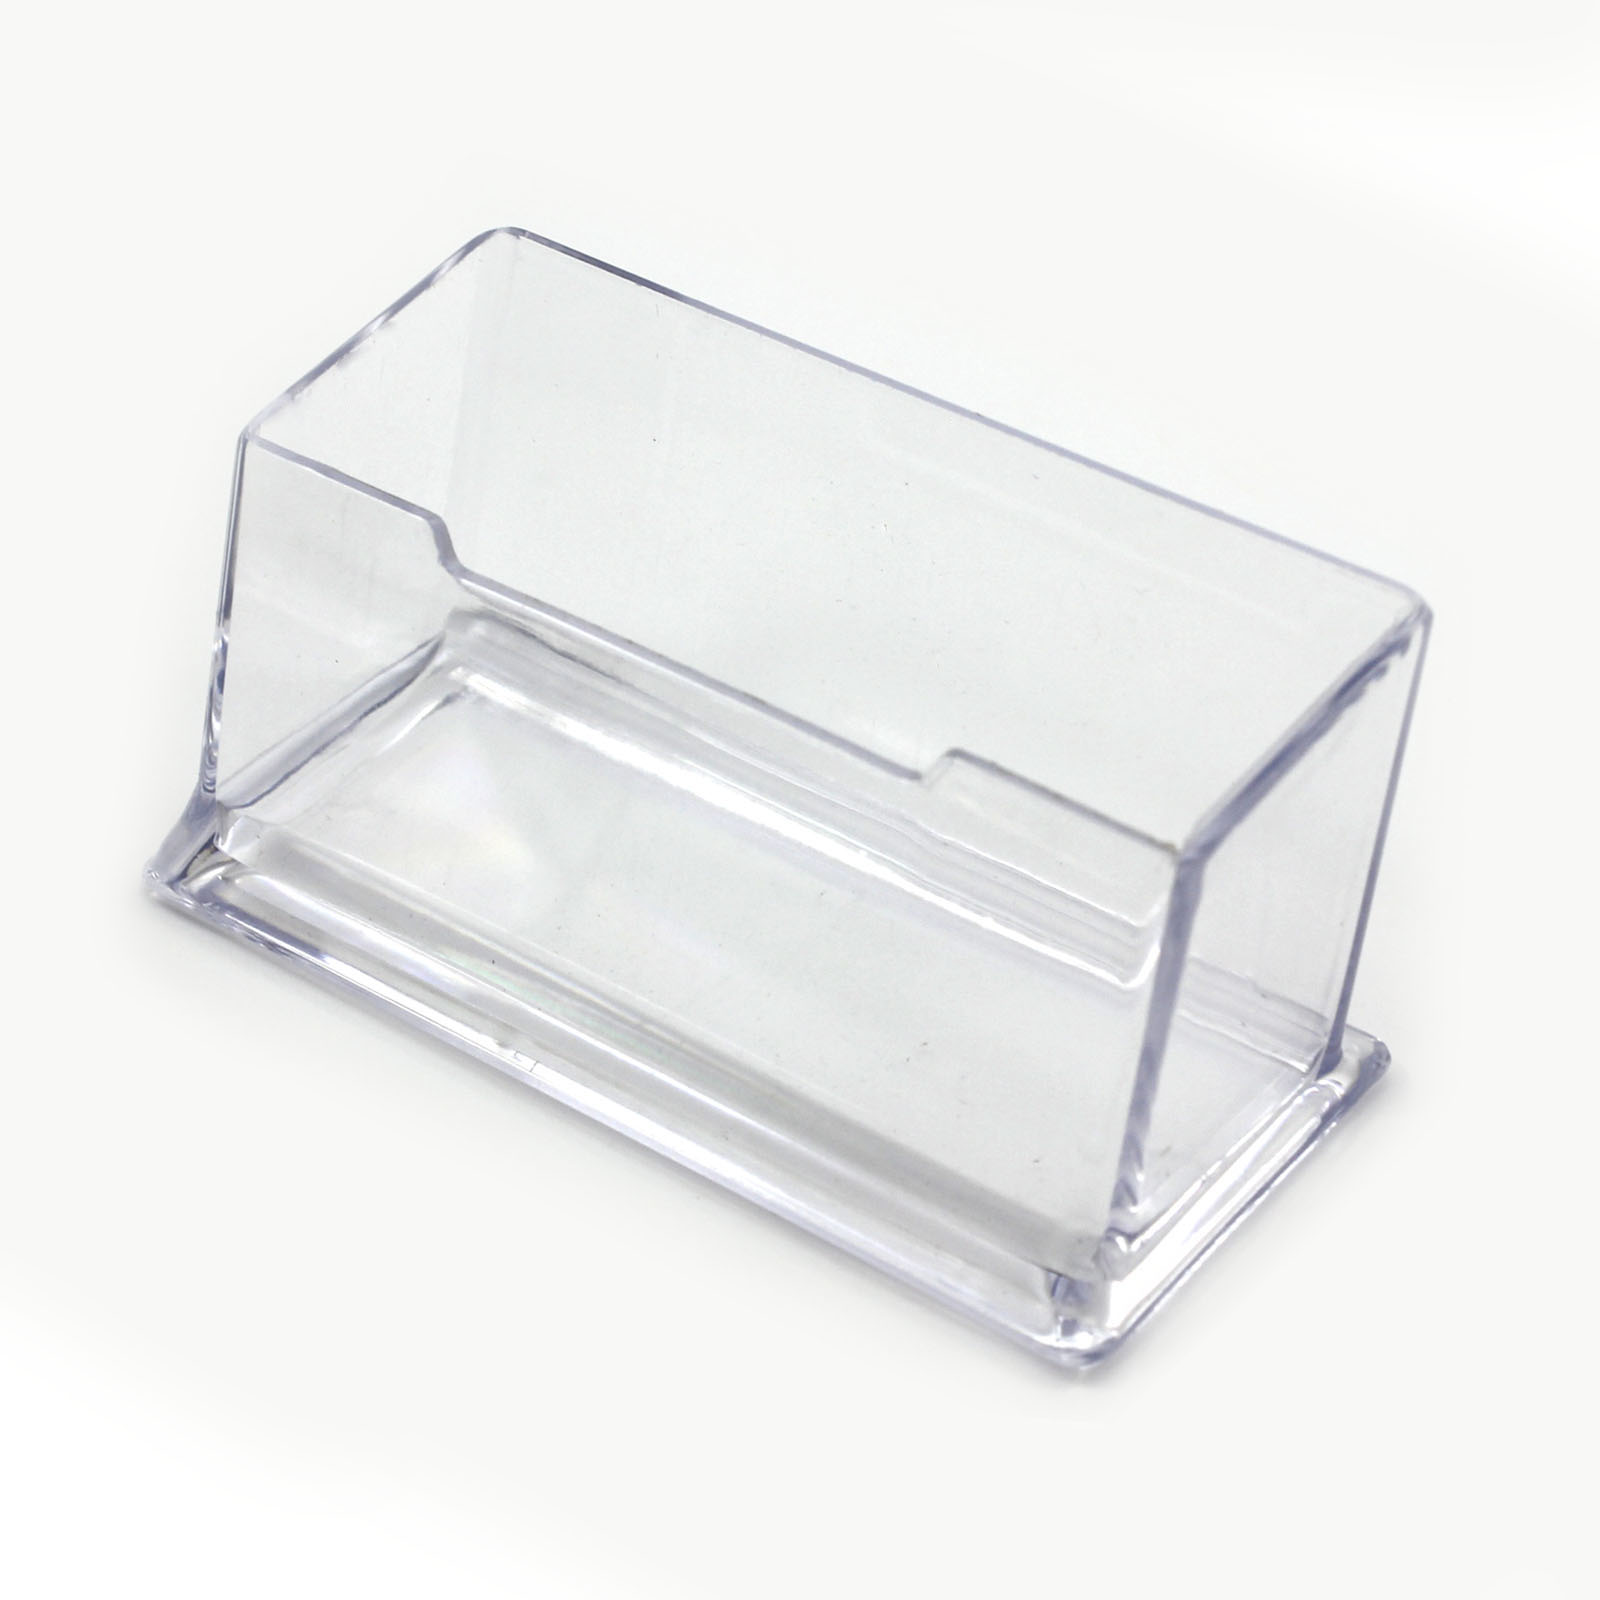 lovely image of acrylic business card holder business cards